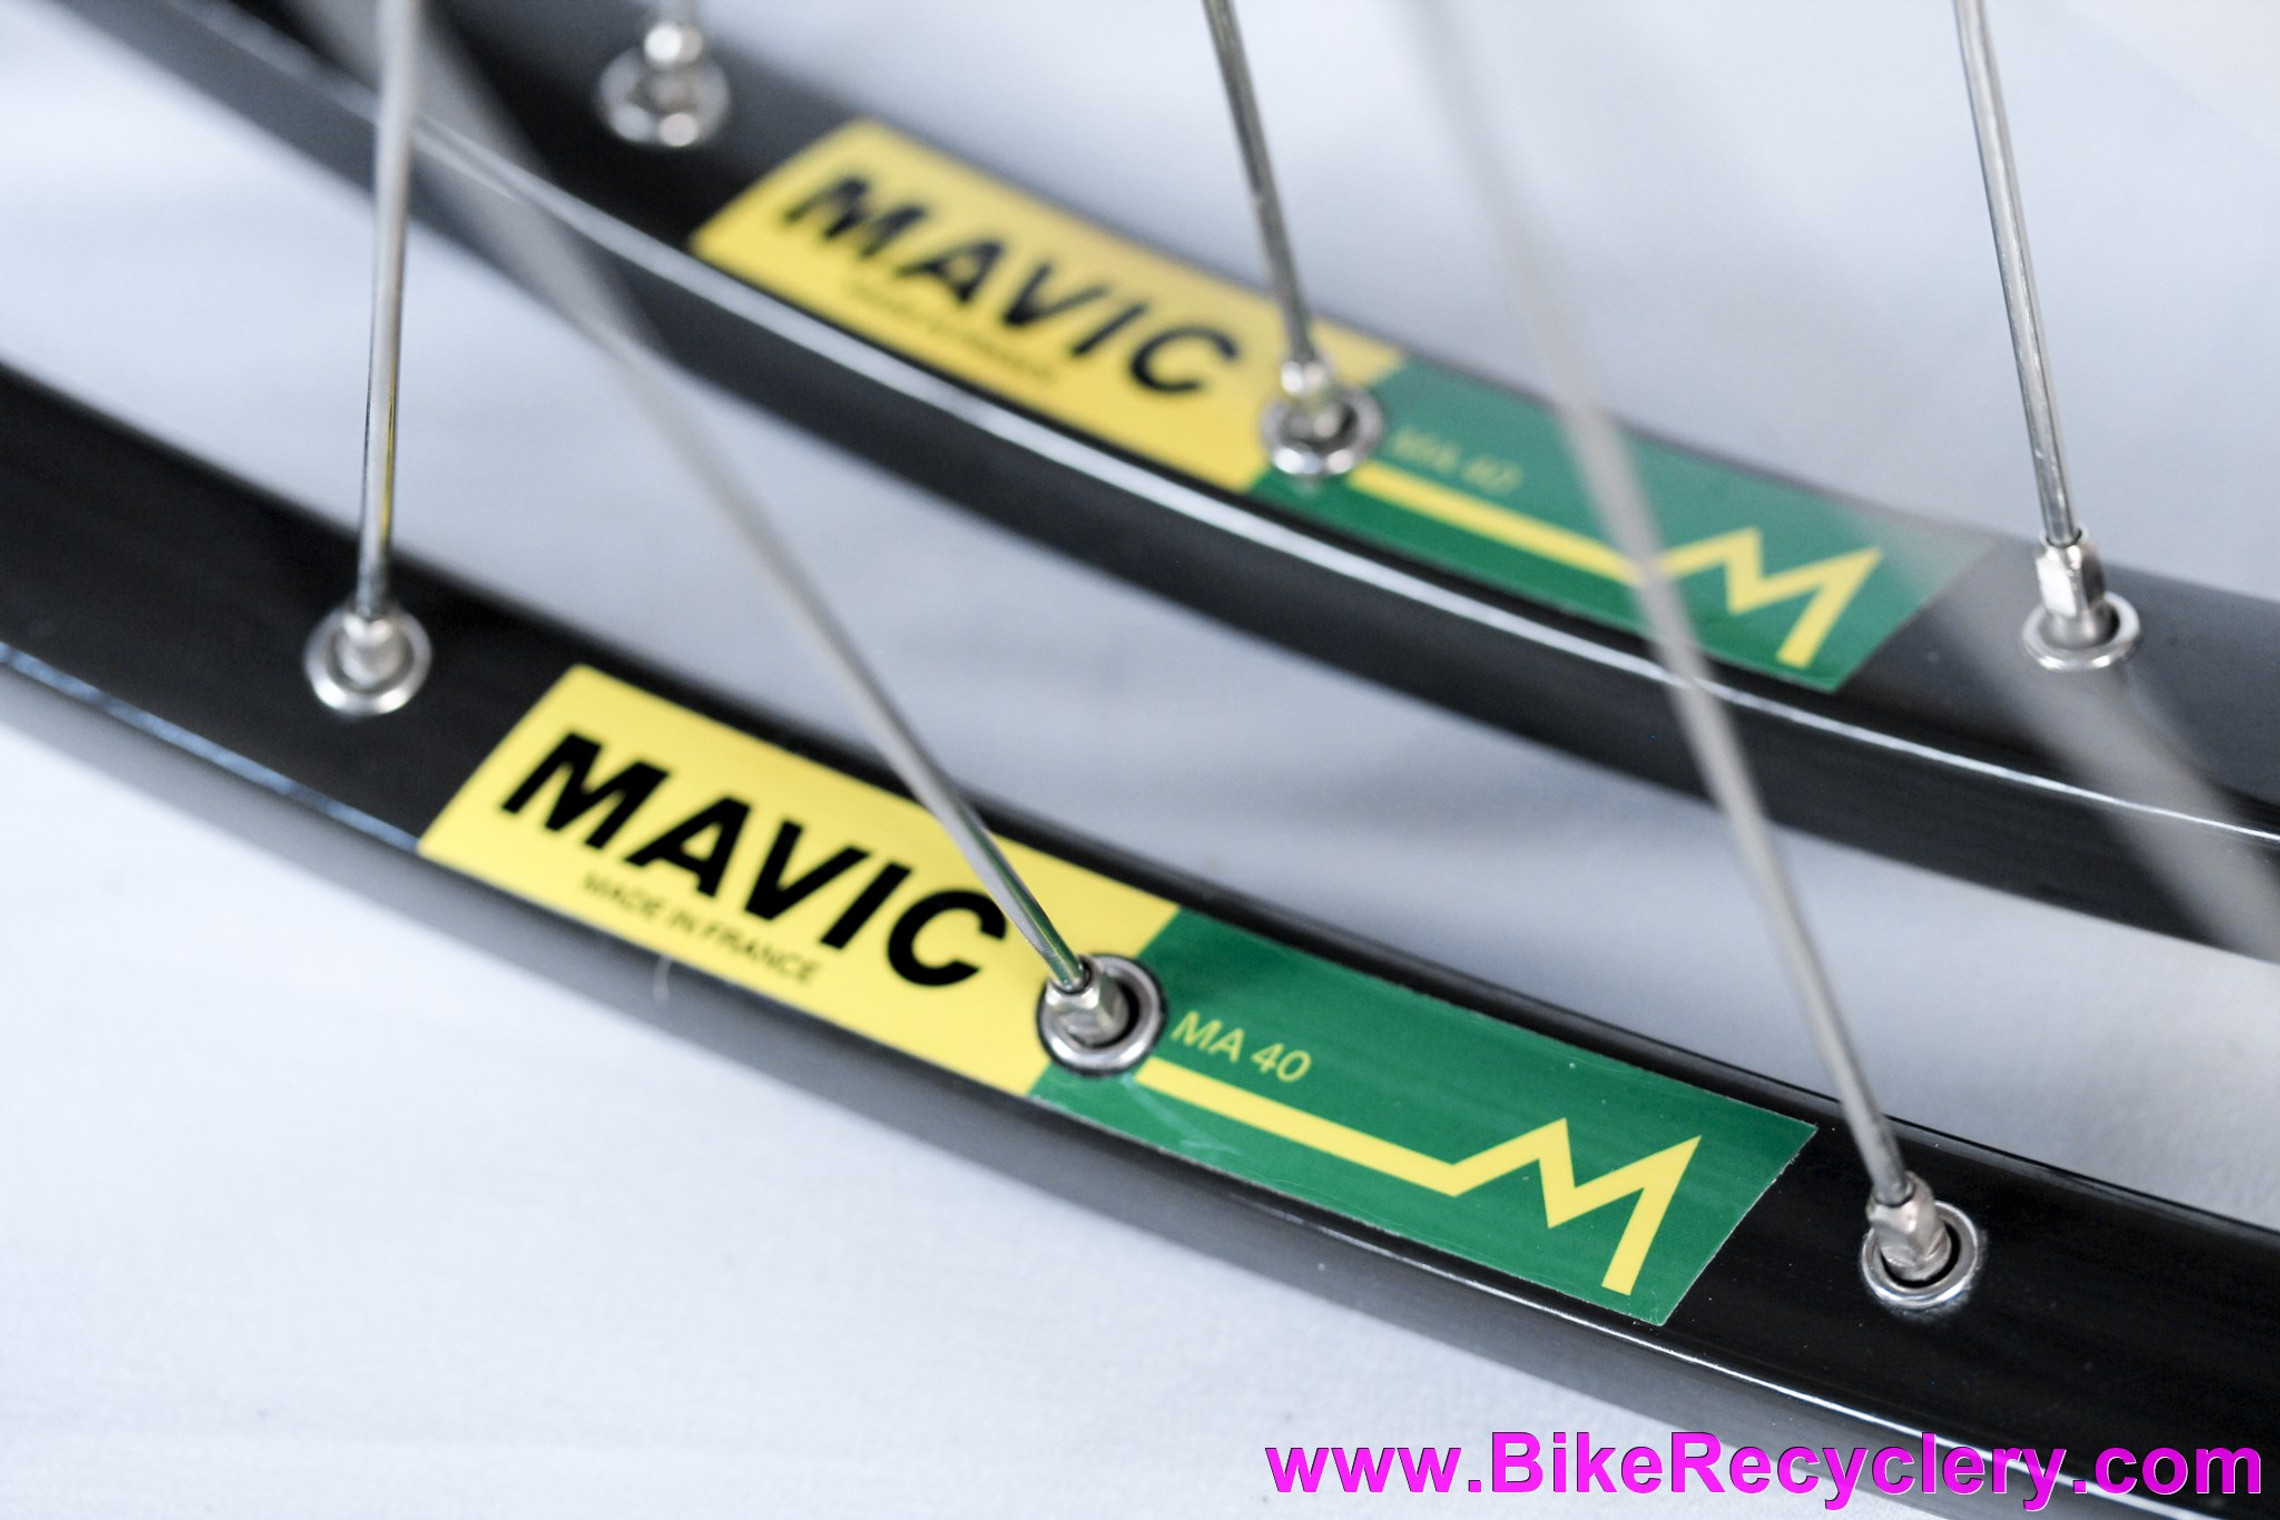 NOS 700c Mavic MA40 & Campagnolo Nuovo Record Low Flange Clincher Wheelset: 36H x 126mm - Green Decal - Curved QR Skewers - Vintage 1980's/1990's (Take-Off)